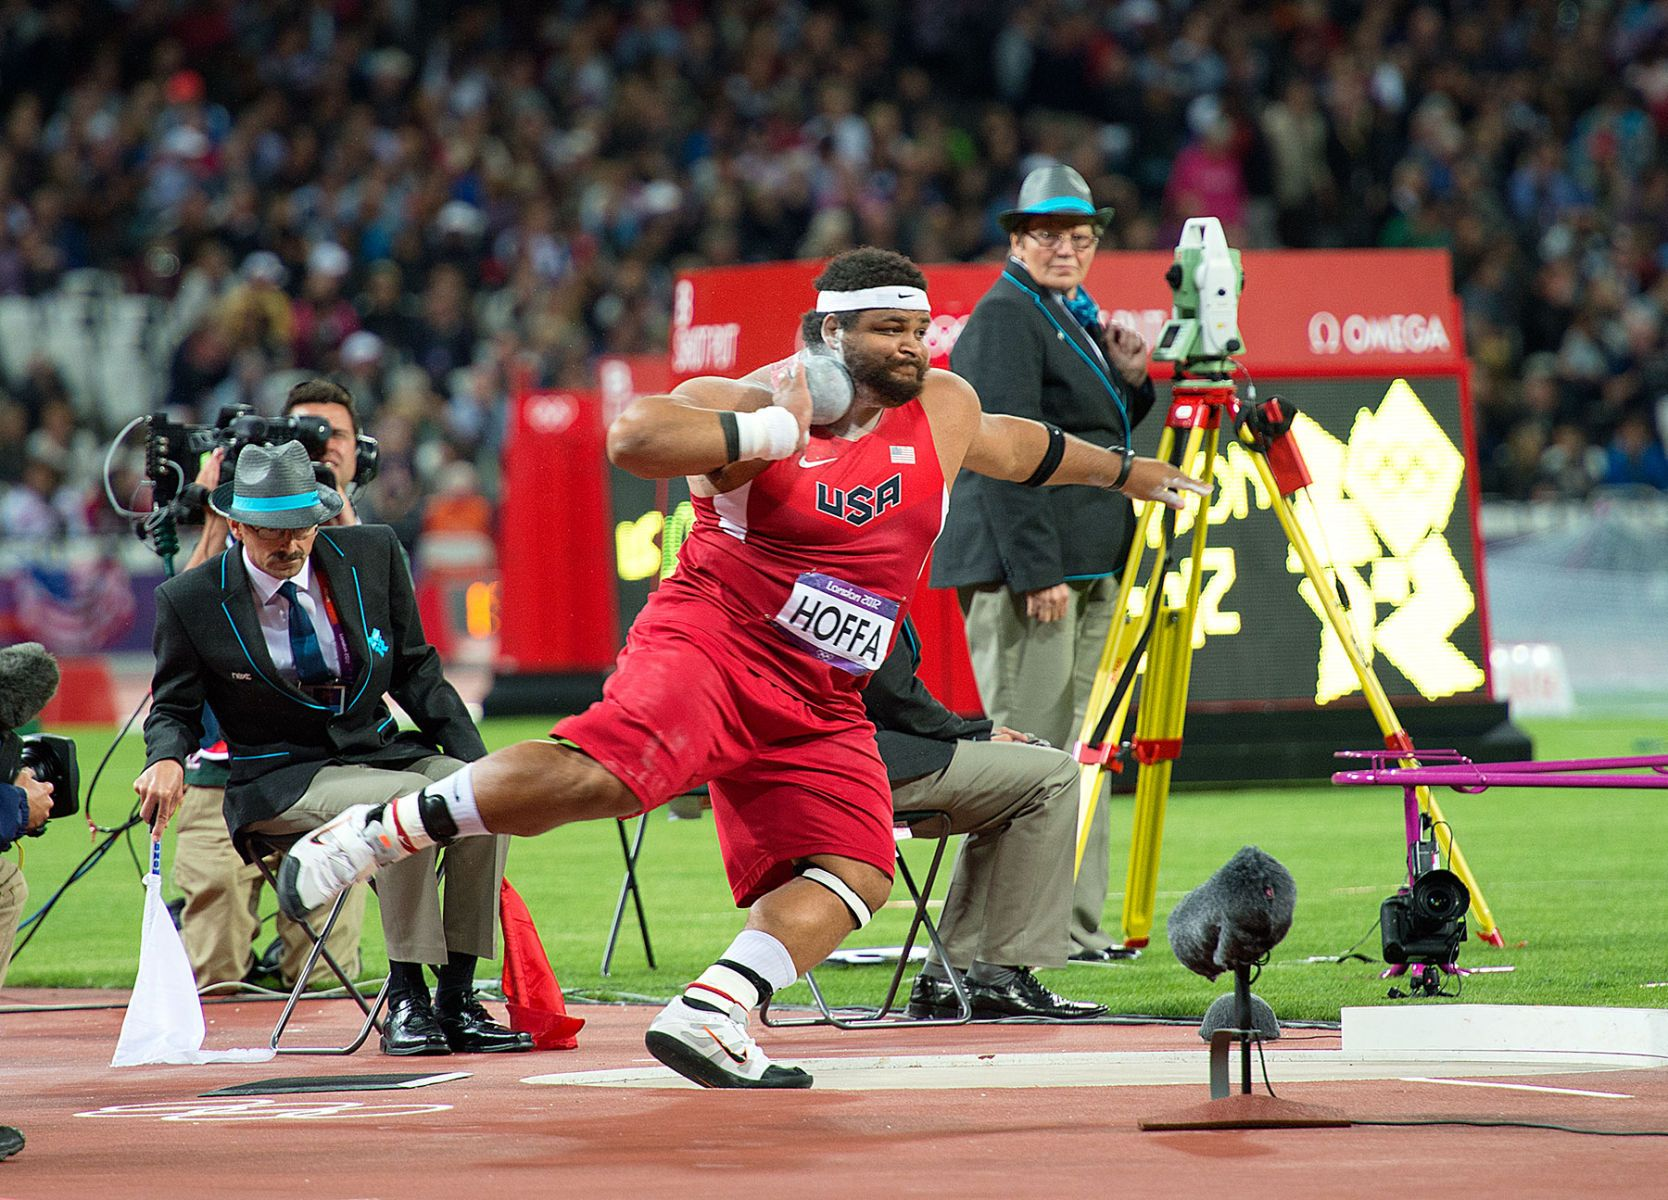 1london2012_reese_hoffa_spm_track_and_field_image_jeff_cohen_photo_lb.jpg